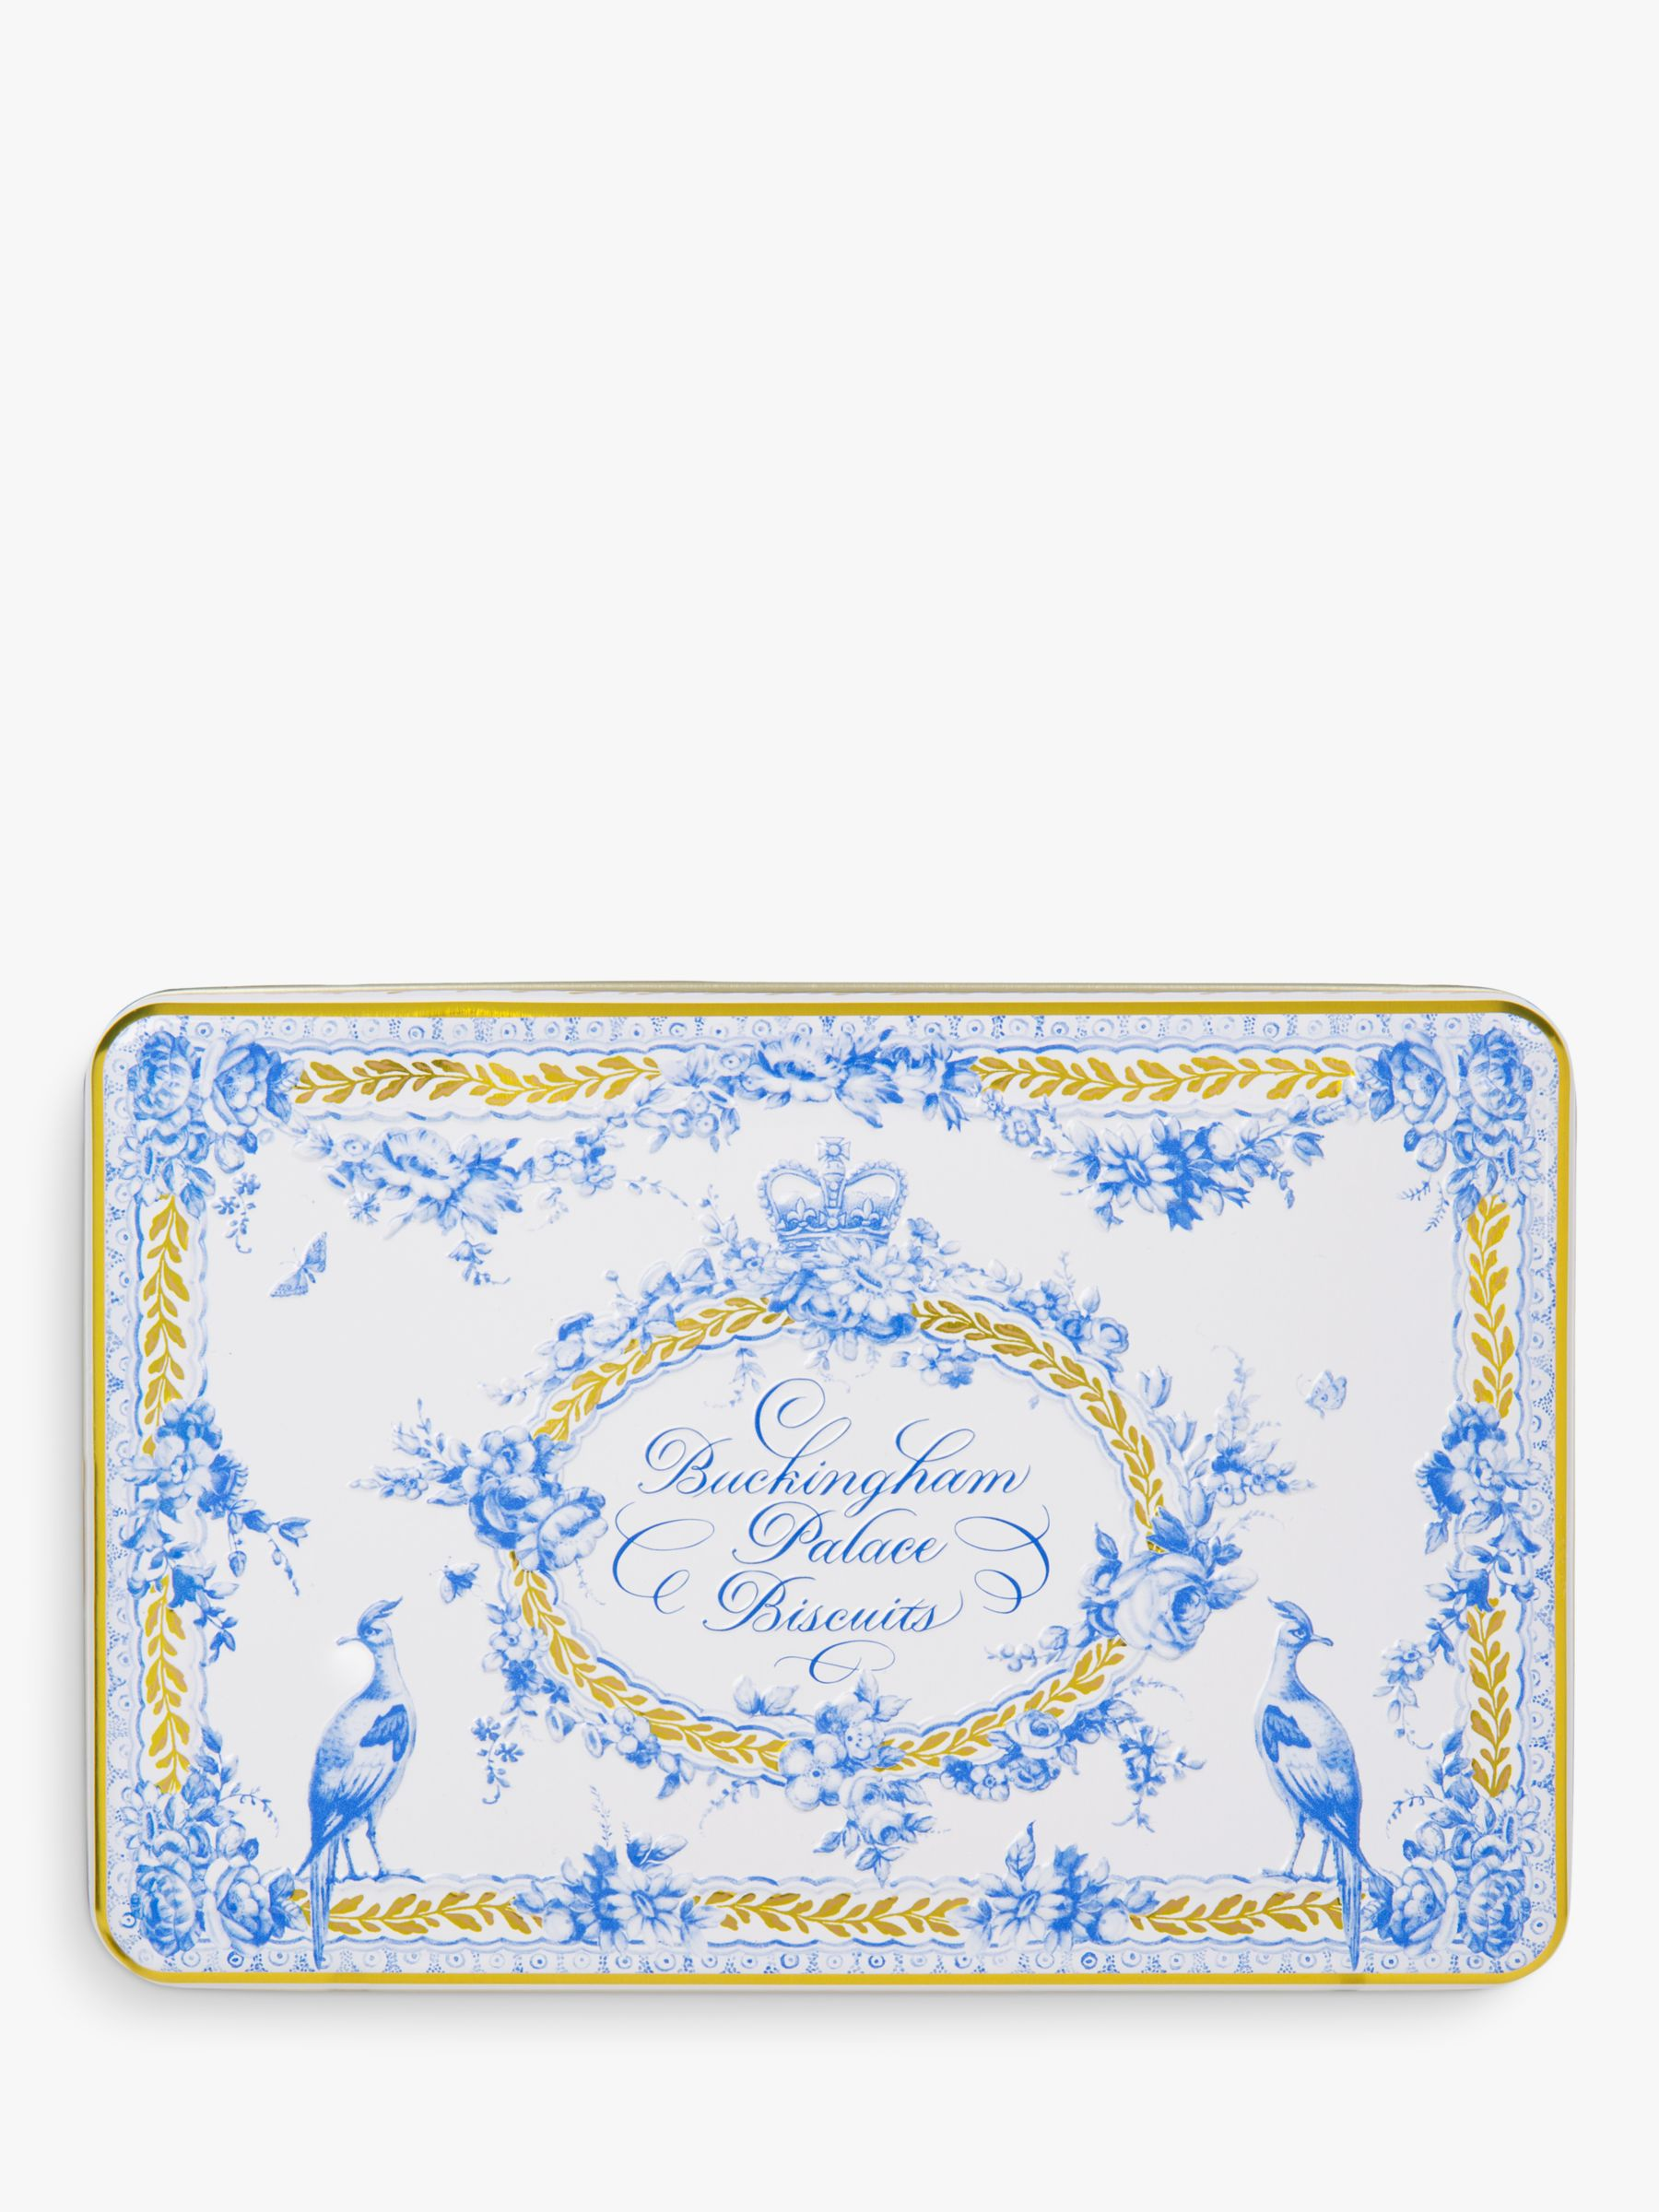 Royal Collection Royal Collection Buckingham Palace Shortbread, 250g